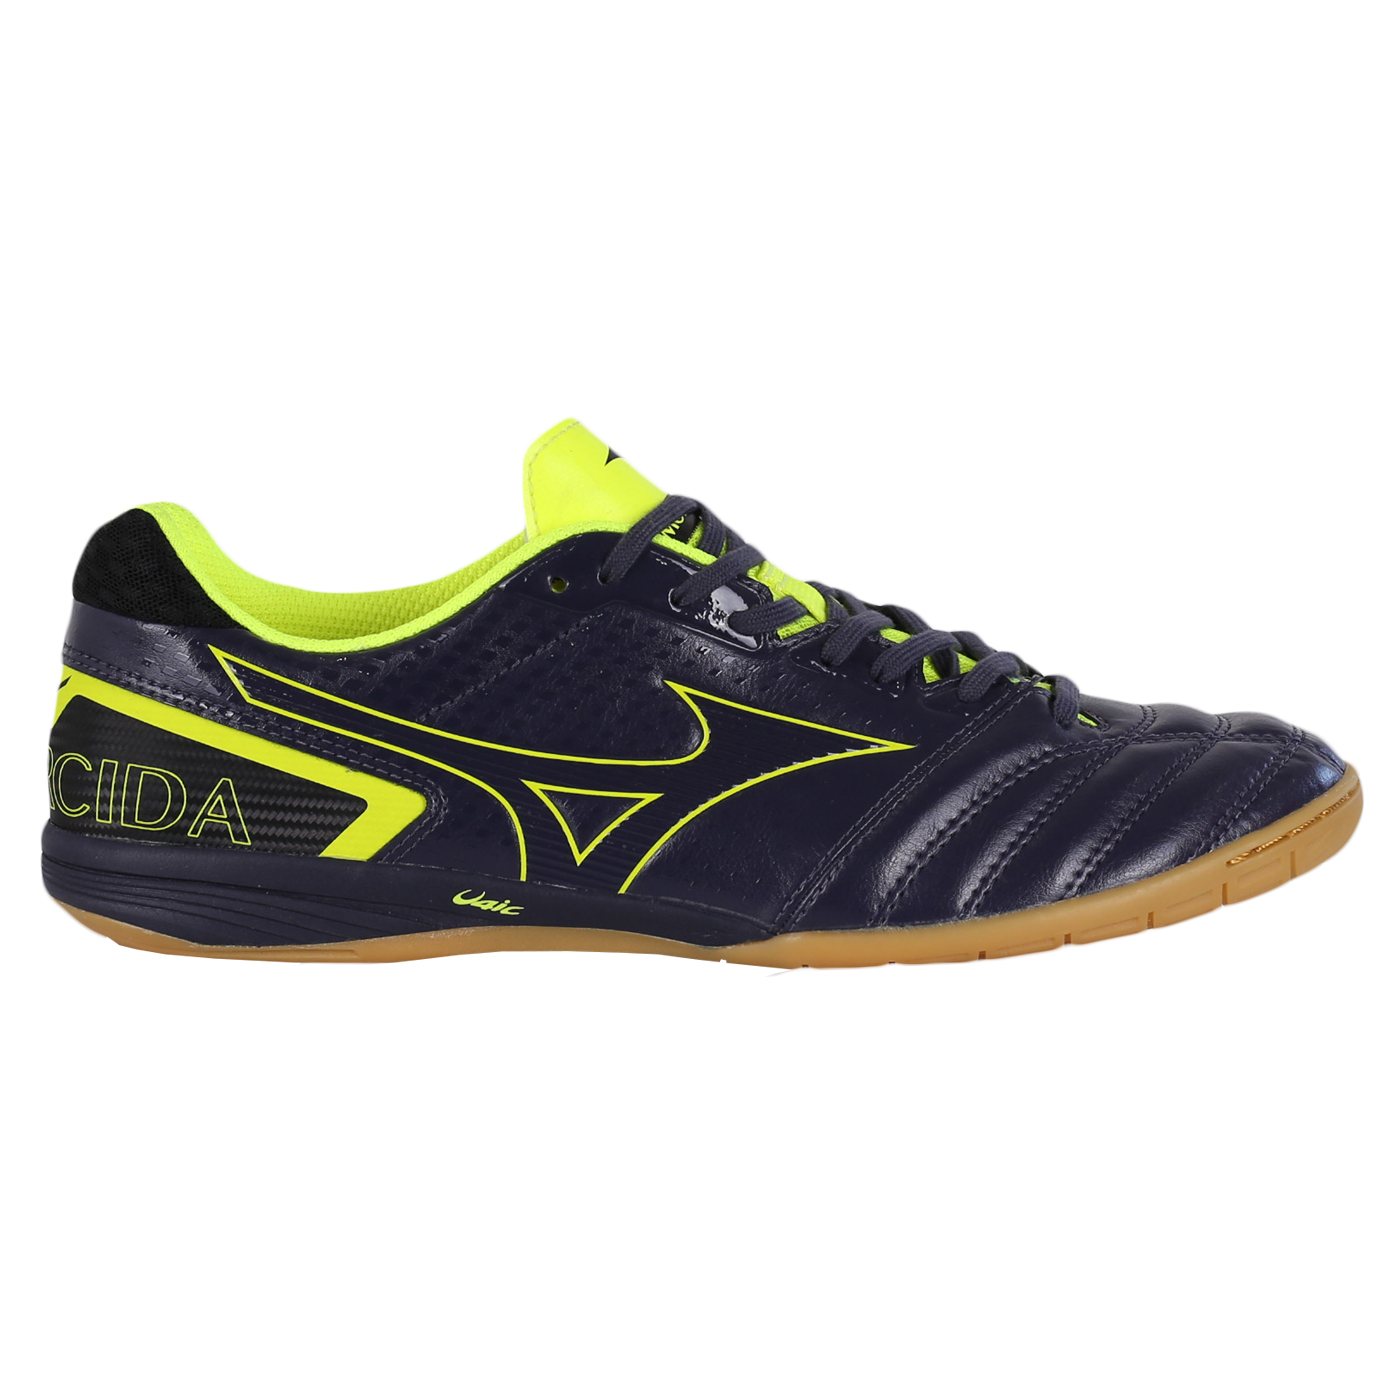 MONARCIDA SALA PRO IN - GRAPHITE/ SAFETY YELLOW/ BLACK